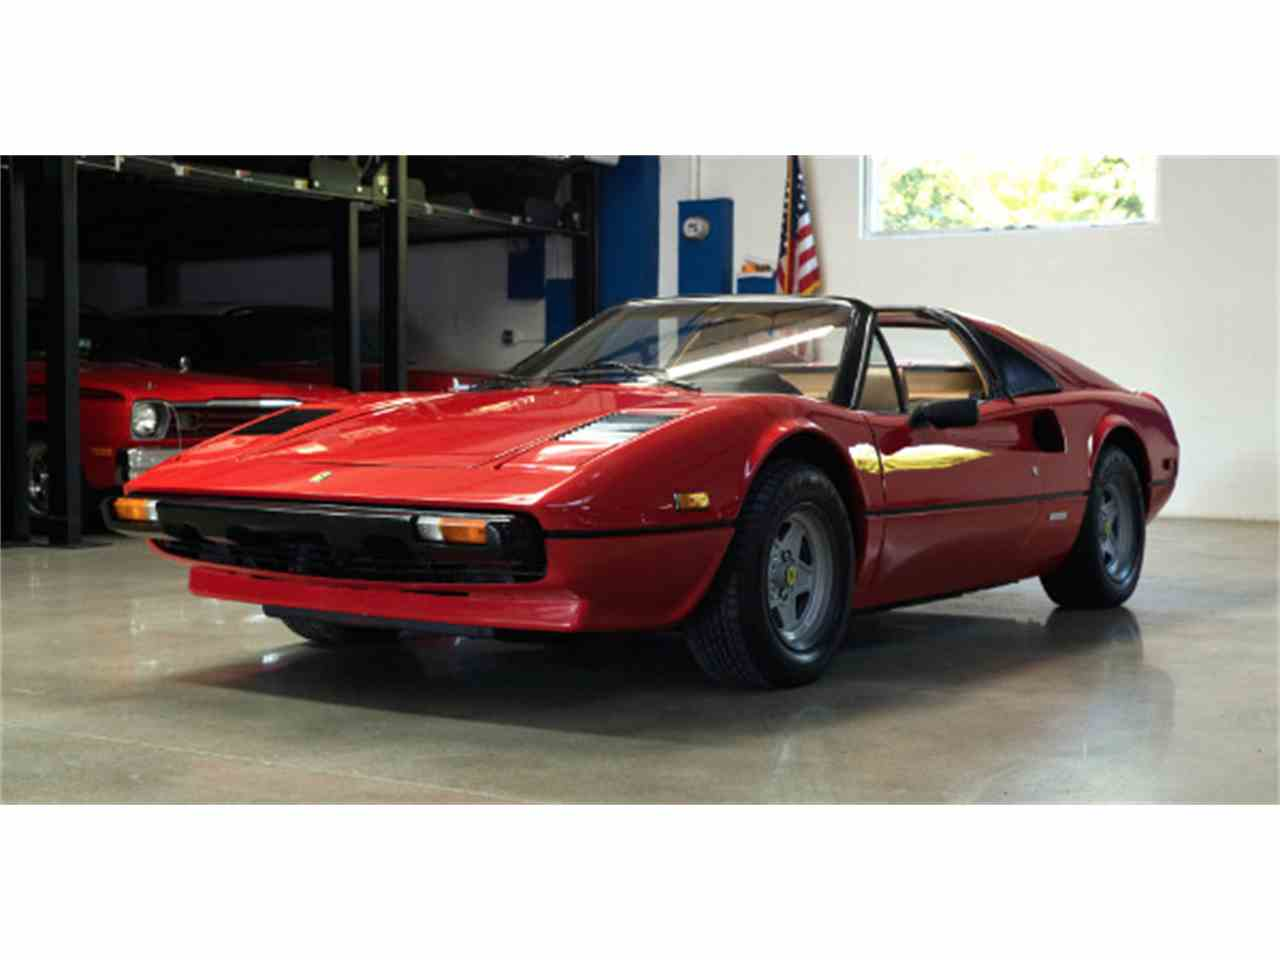 com classics in of view ferrari std santa cars for sale california listings classiccars by cc c offered picture monica coast large west gts